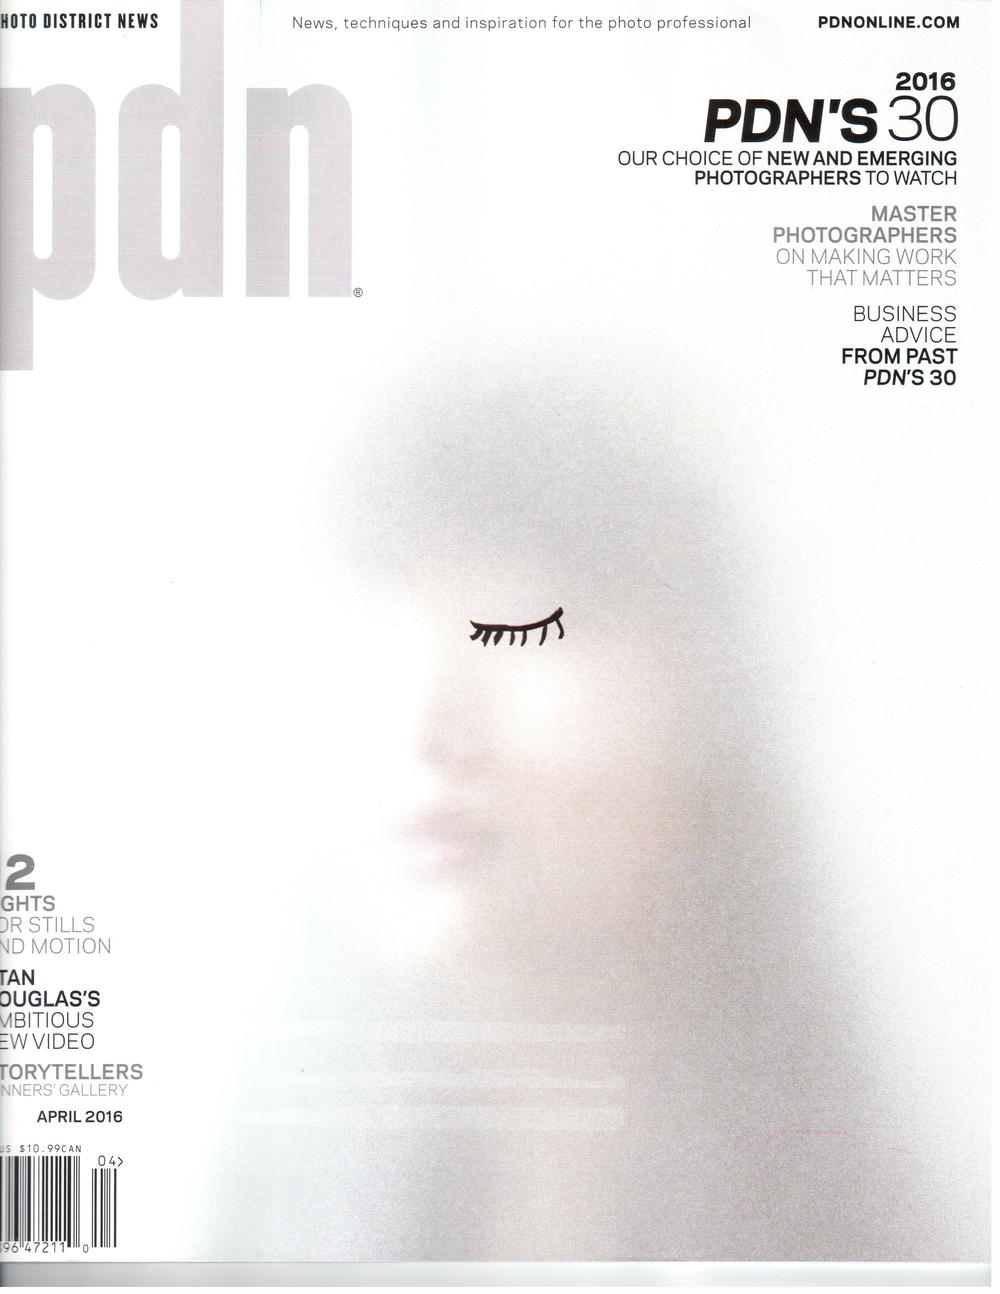 Cover, PDN, April 2016.